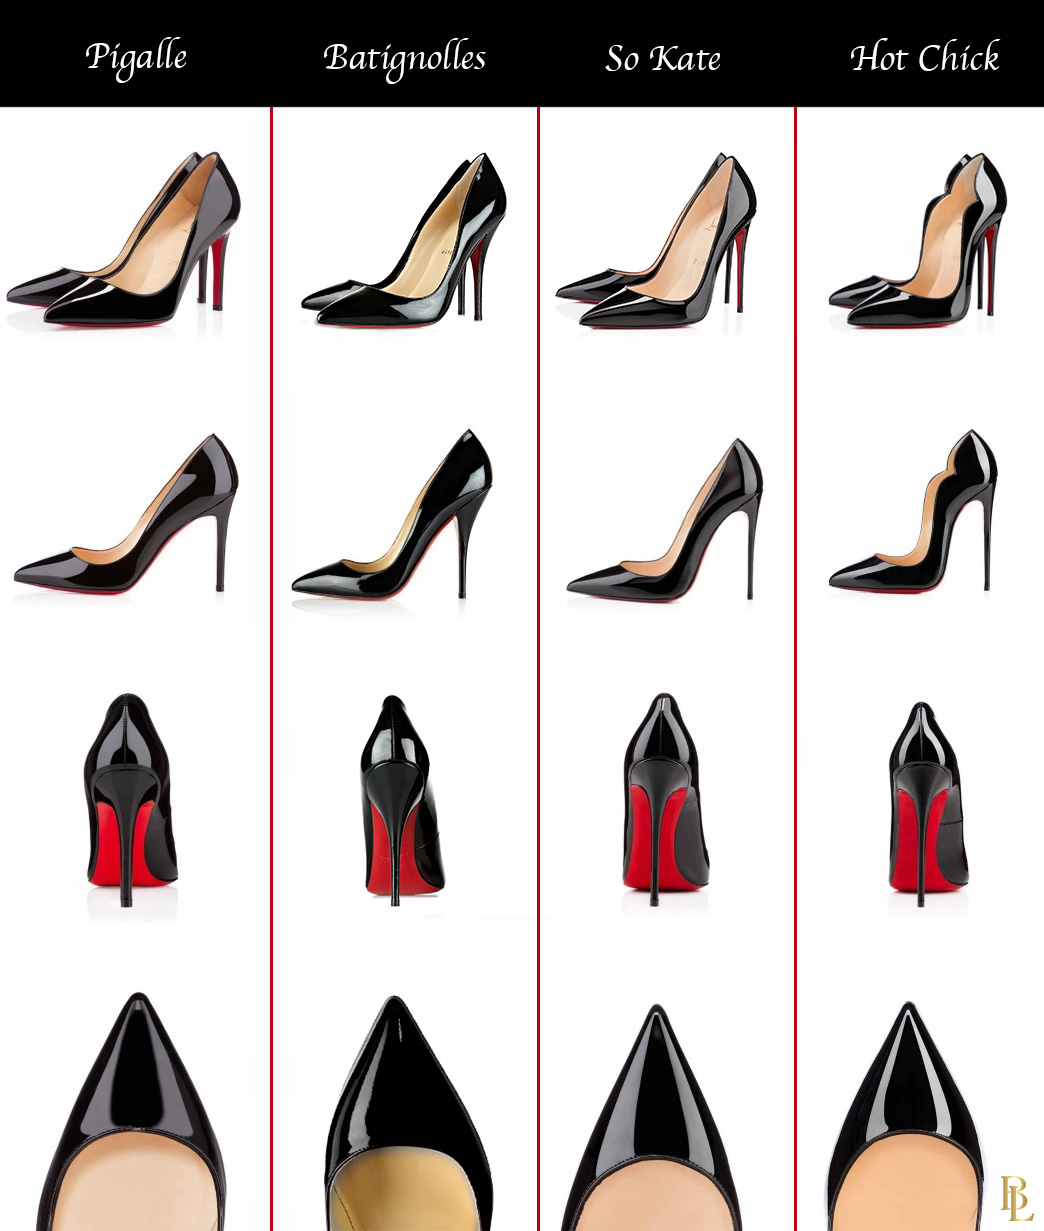 louboutin so kate and pigalle